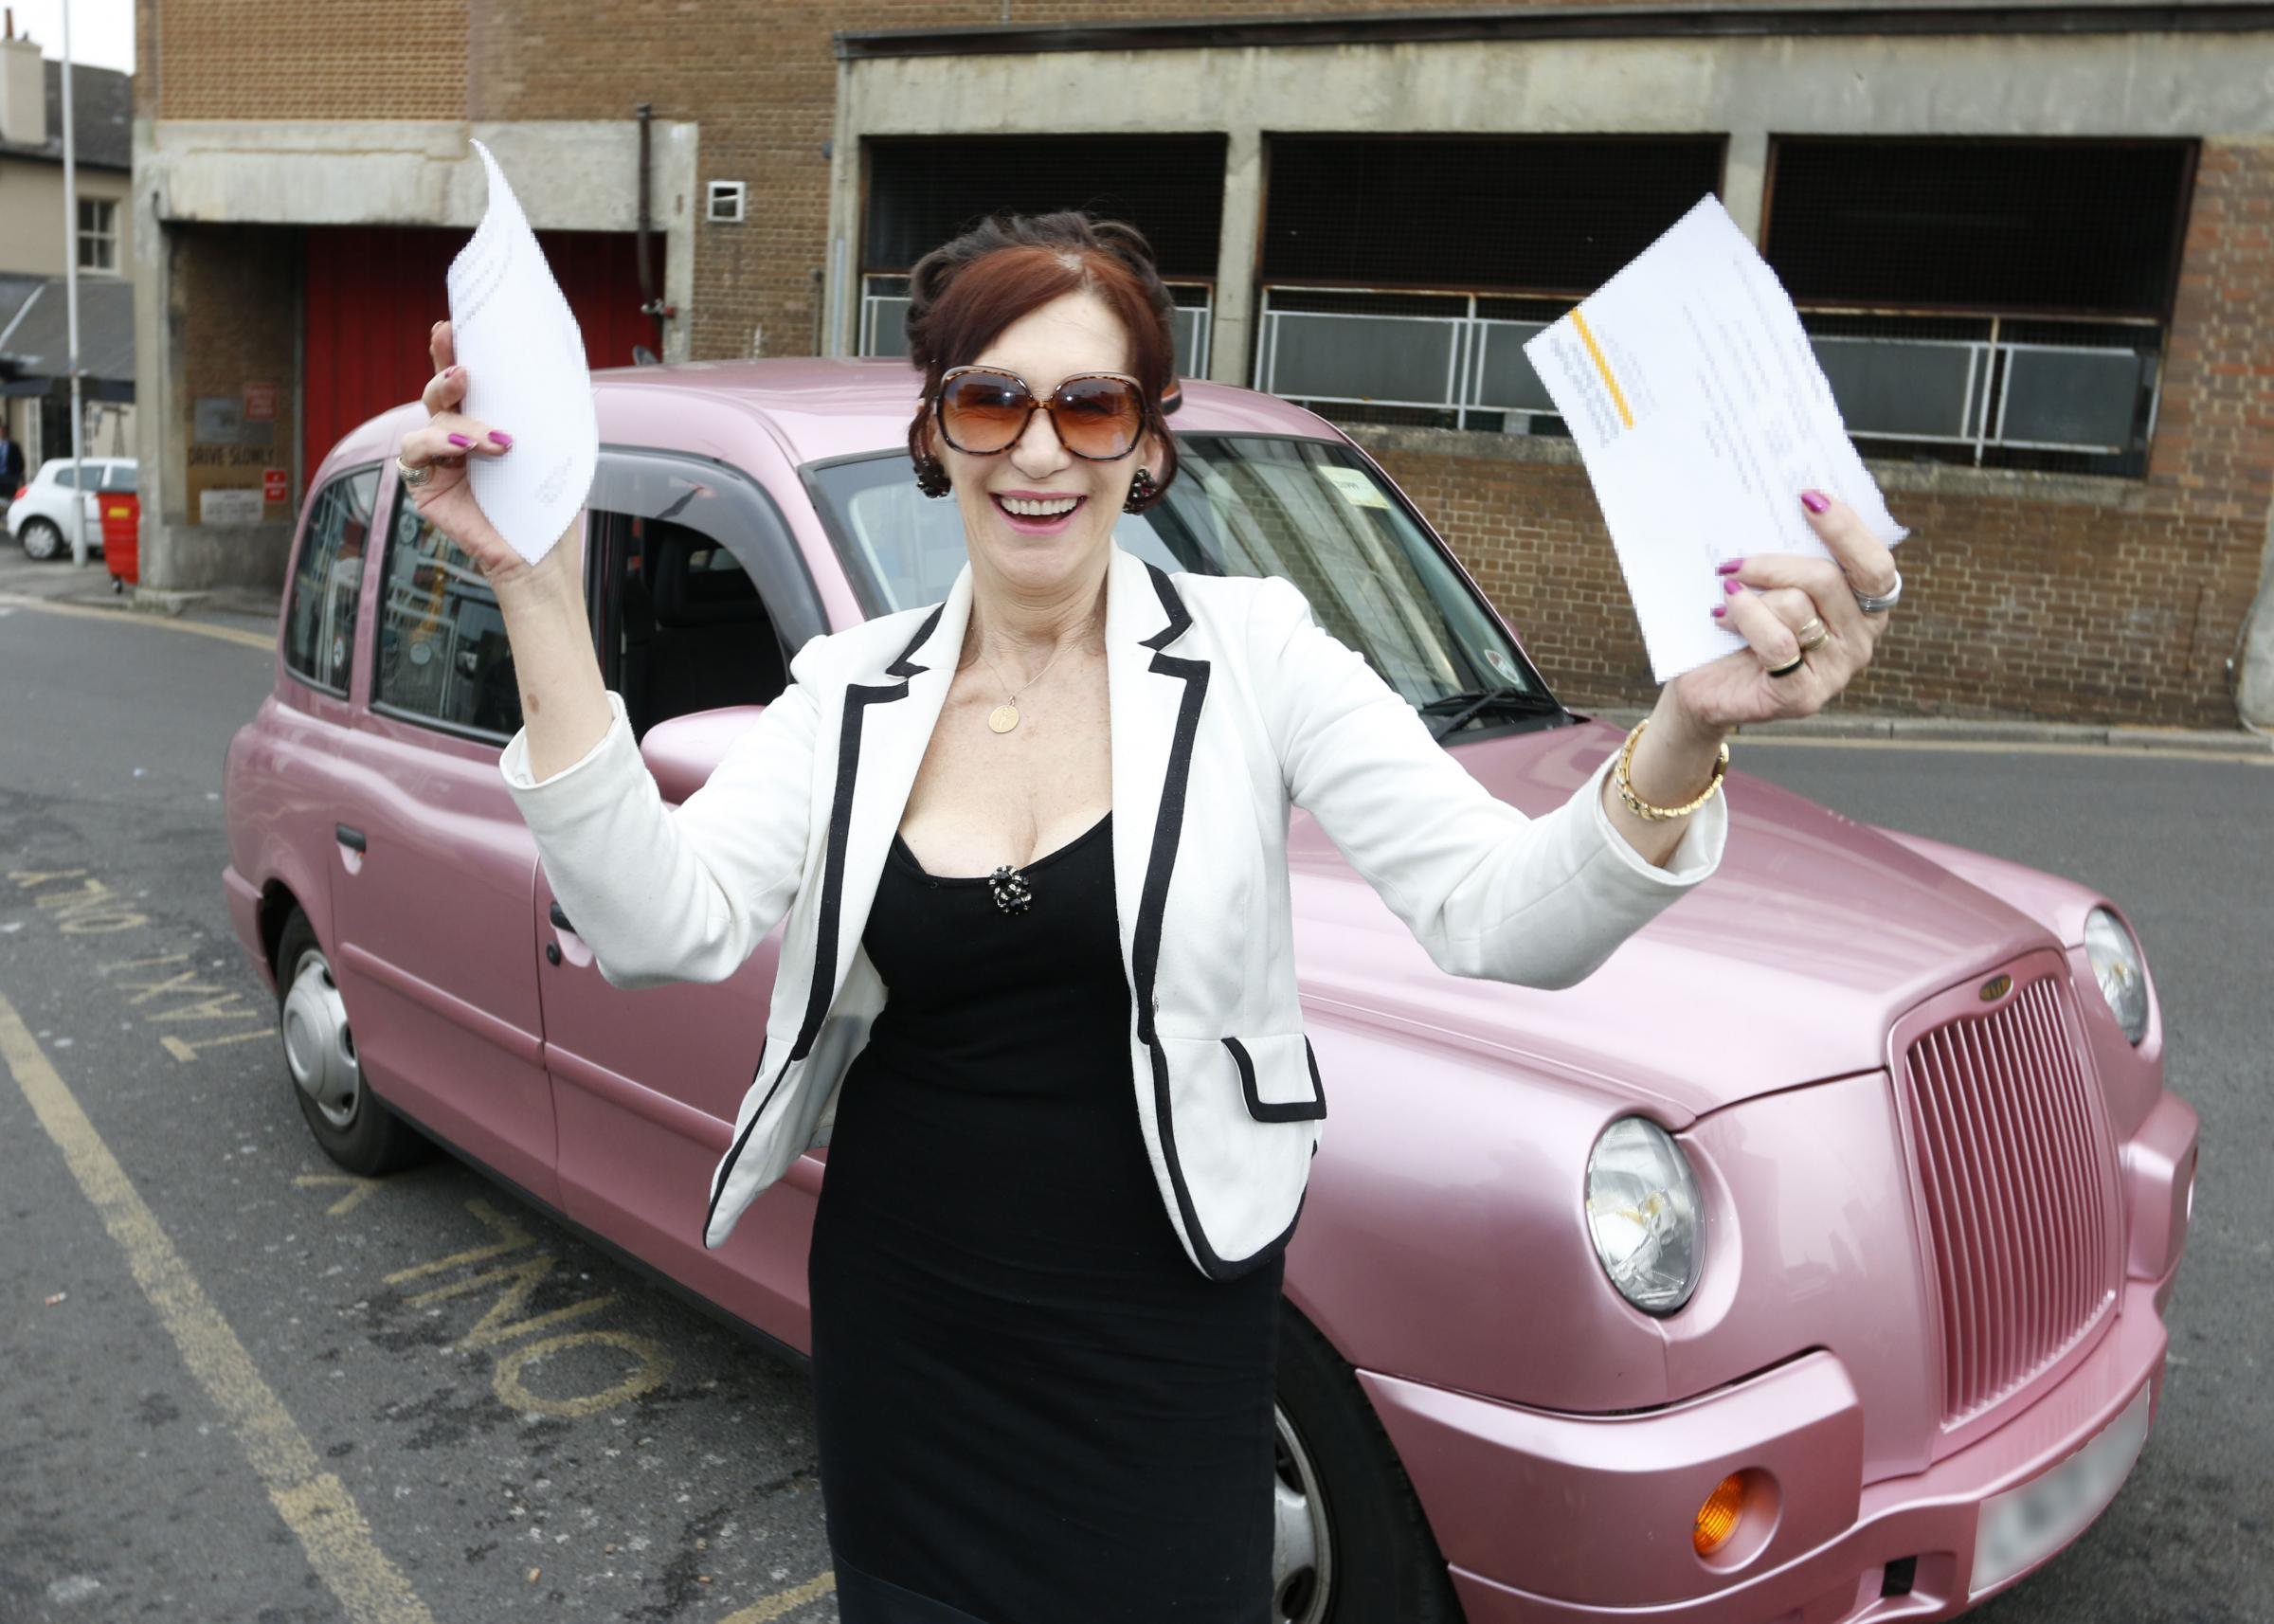 Delighted: Denise Borg beat Croydon Council's traffic fines